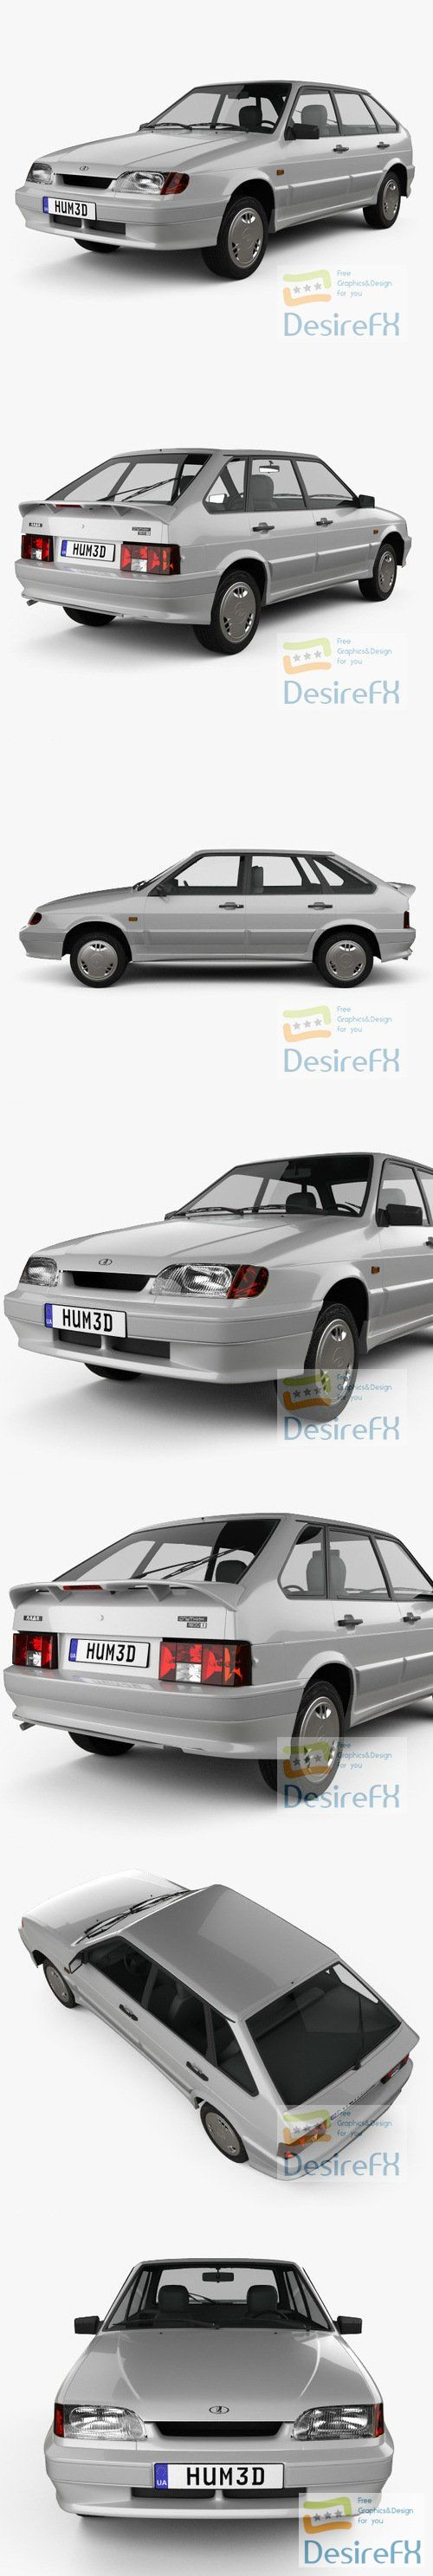 VAZ Lada Samara 2114 hatchback 5-door 1997 3D Model